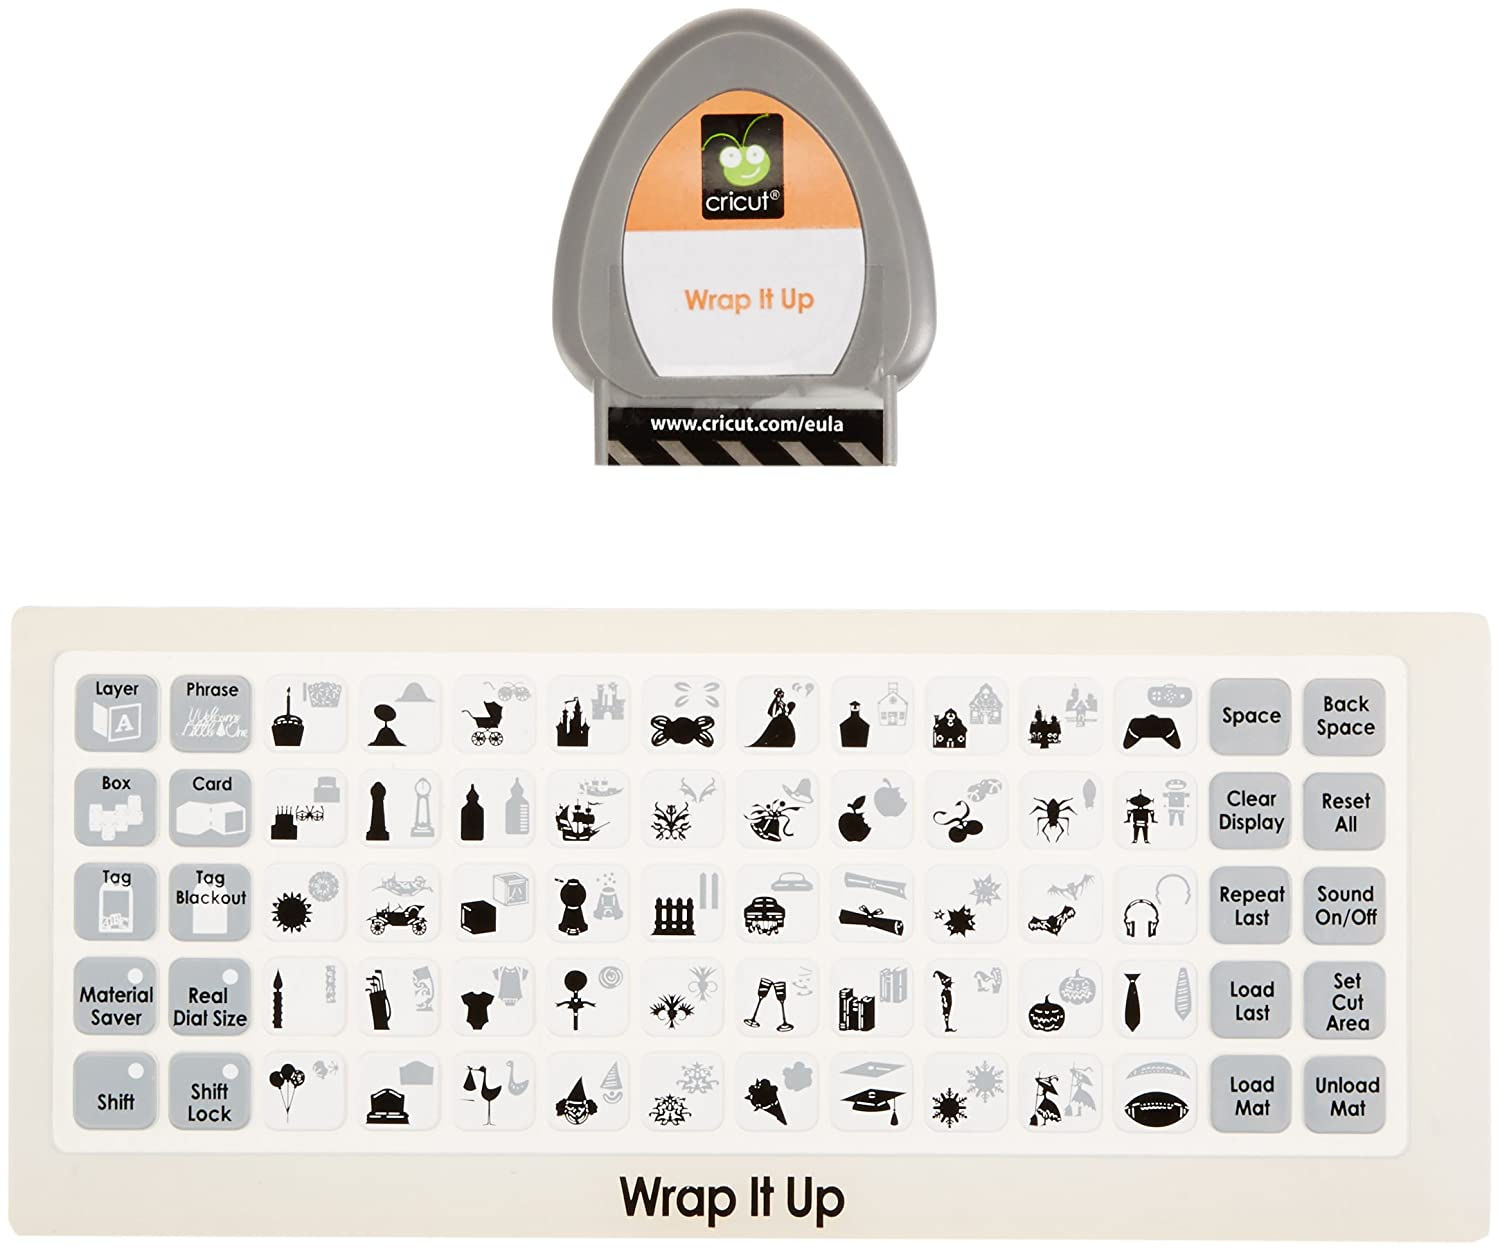 Amazon.com: Cricut Cartucho, Wrap It Up: Arte, Manualidades ...